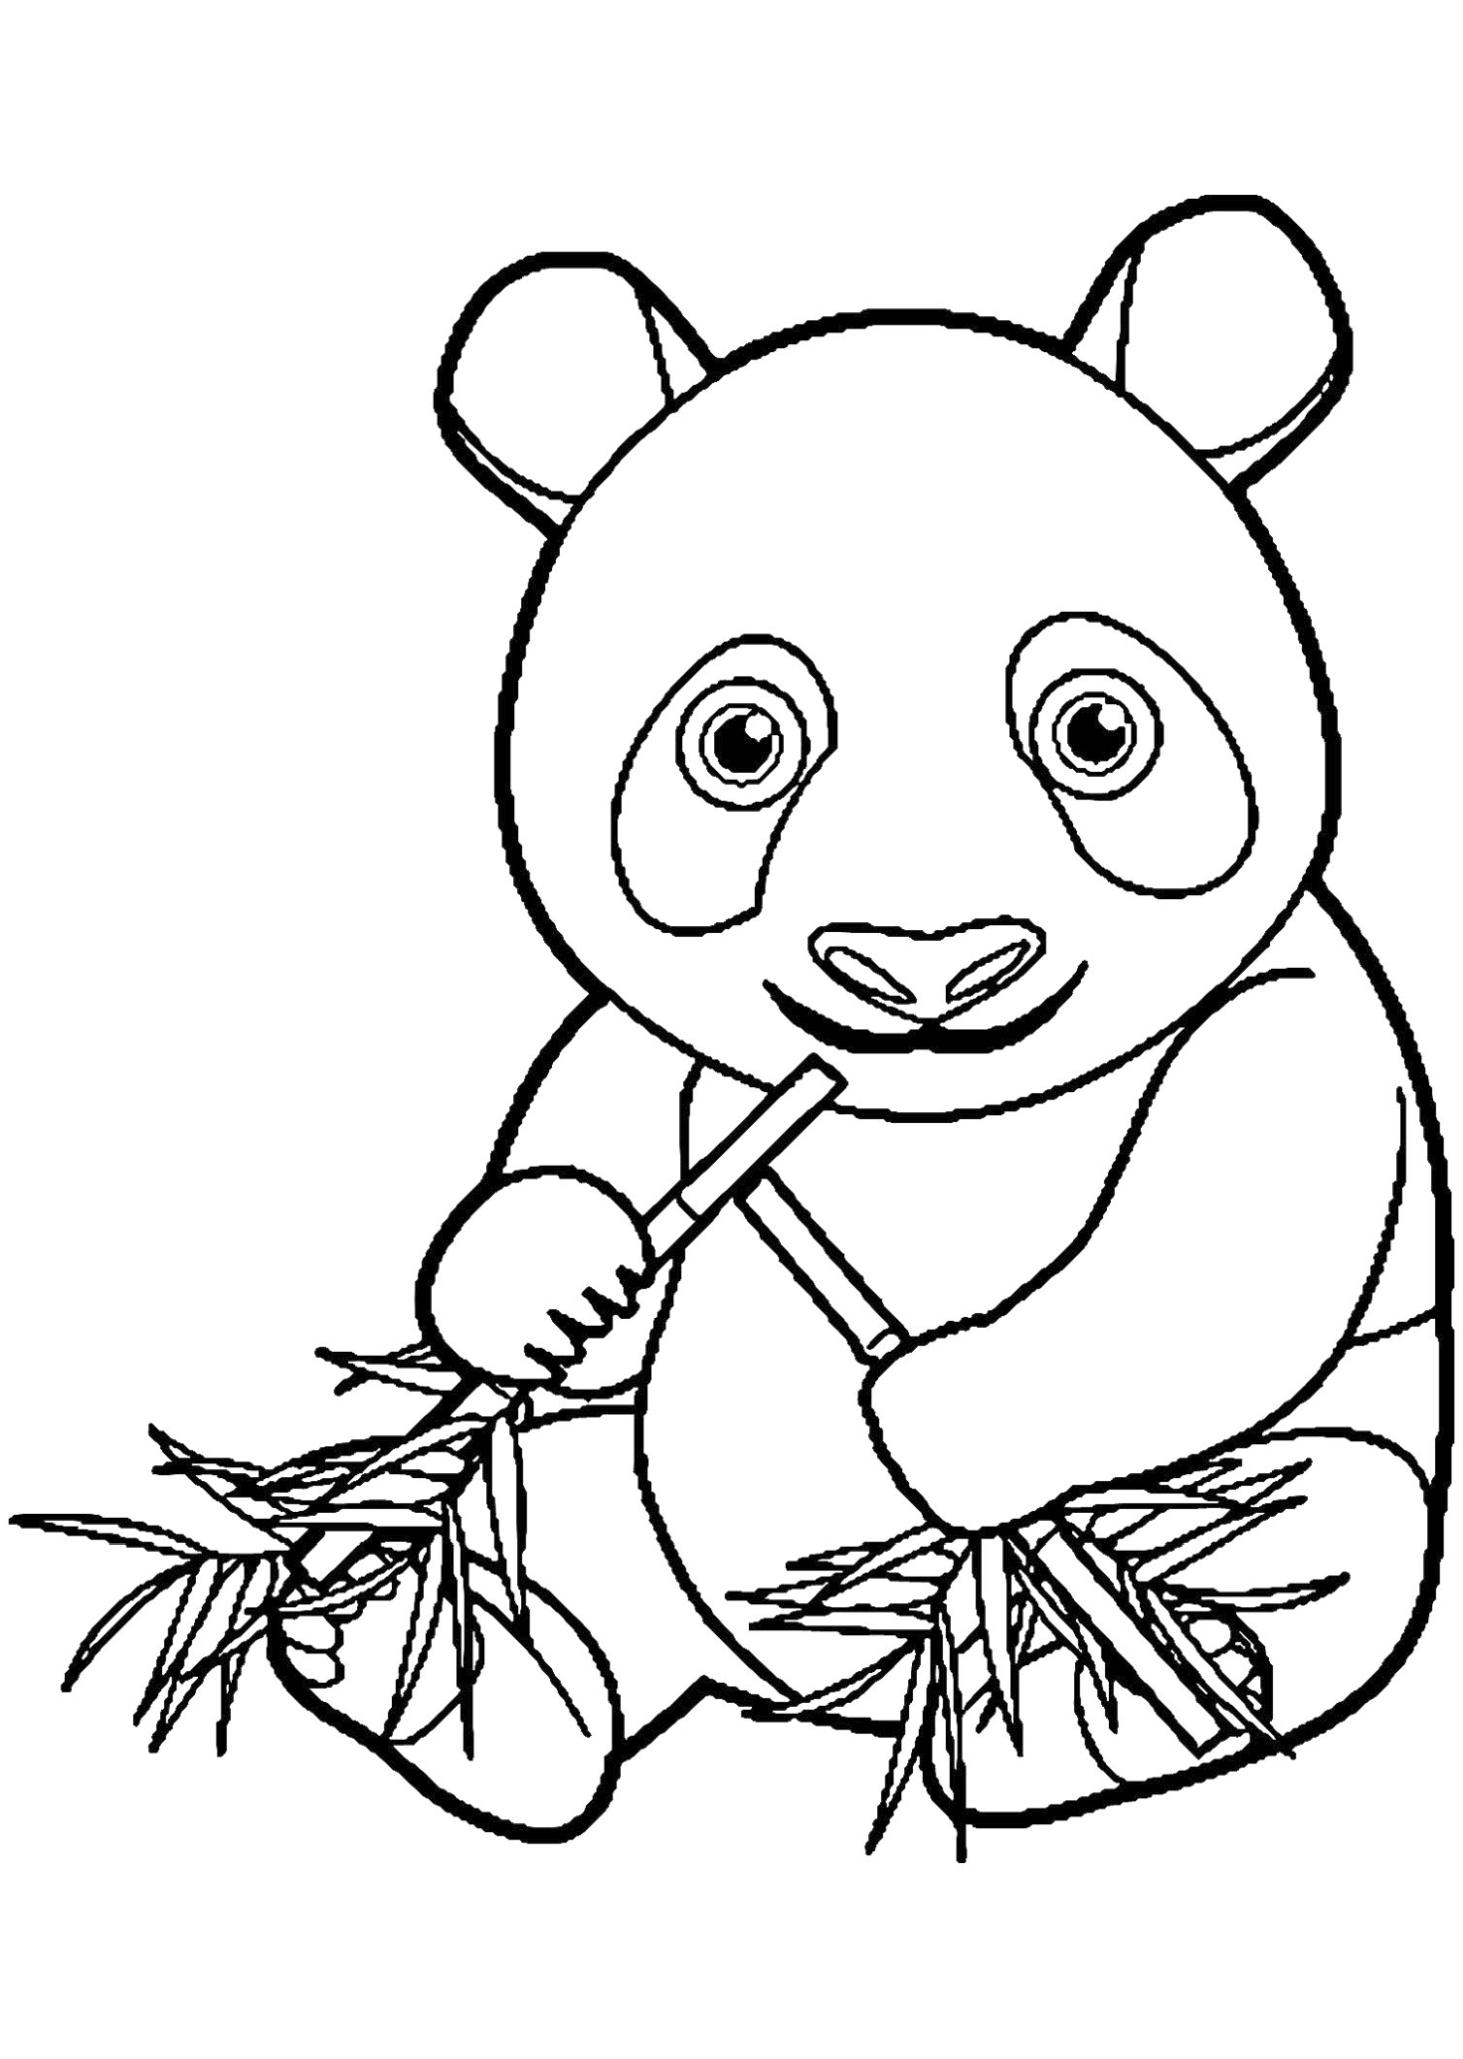 Combo Panda Coloring Pages